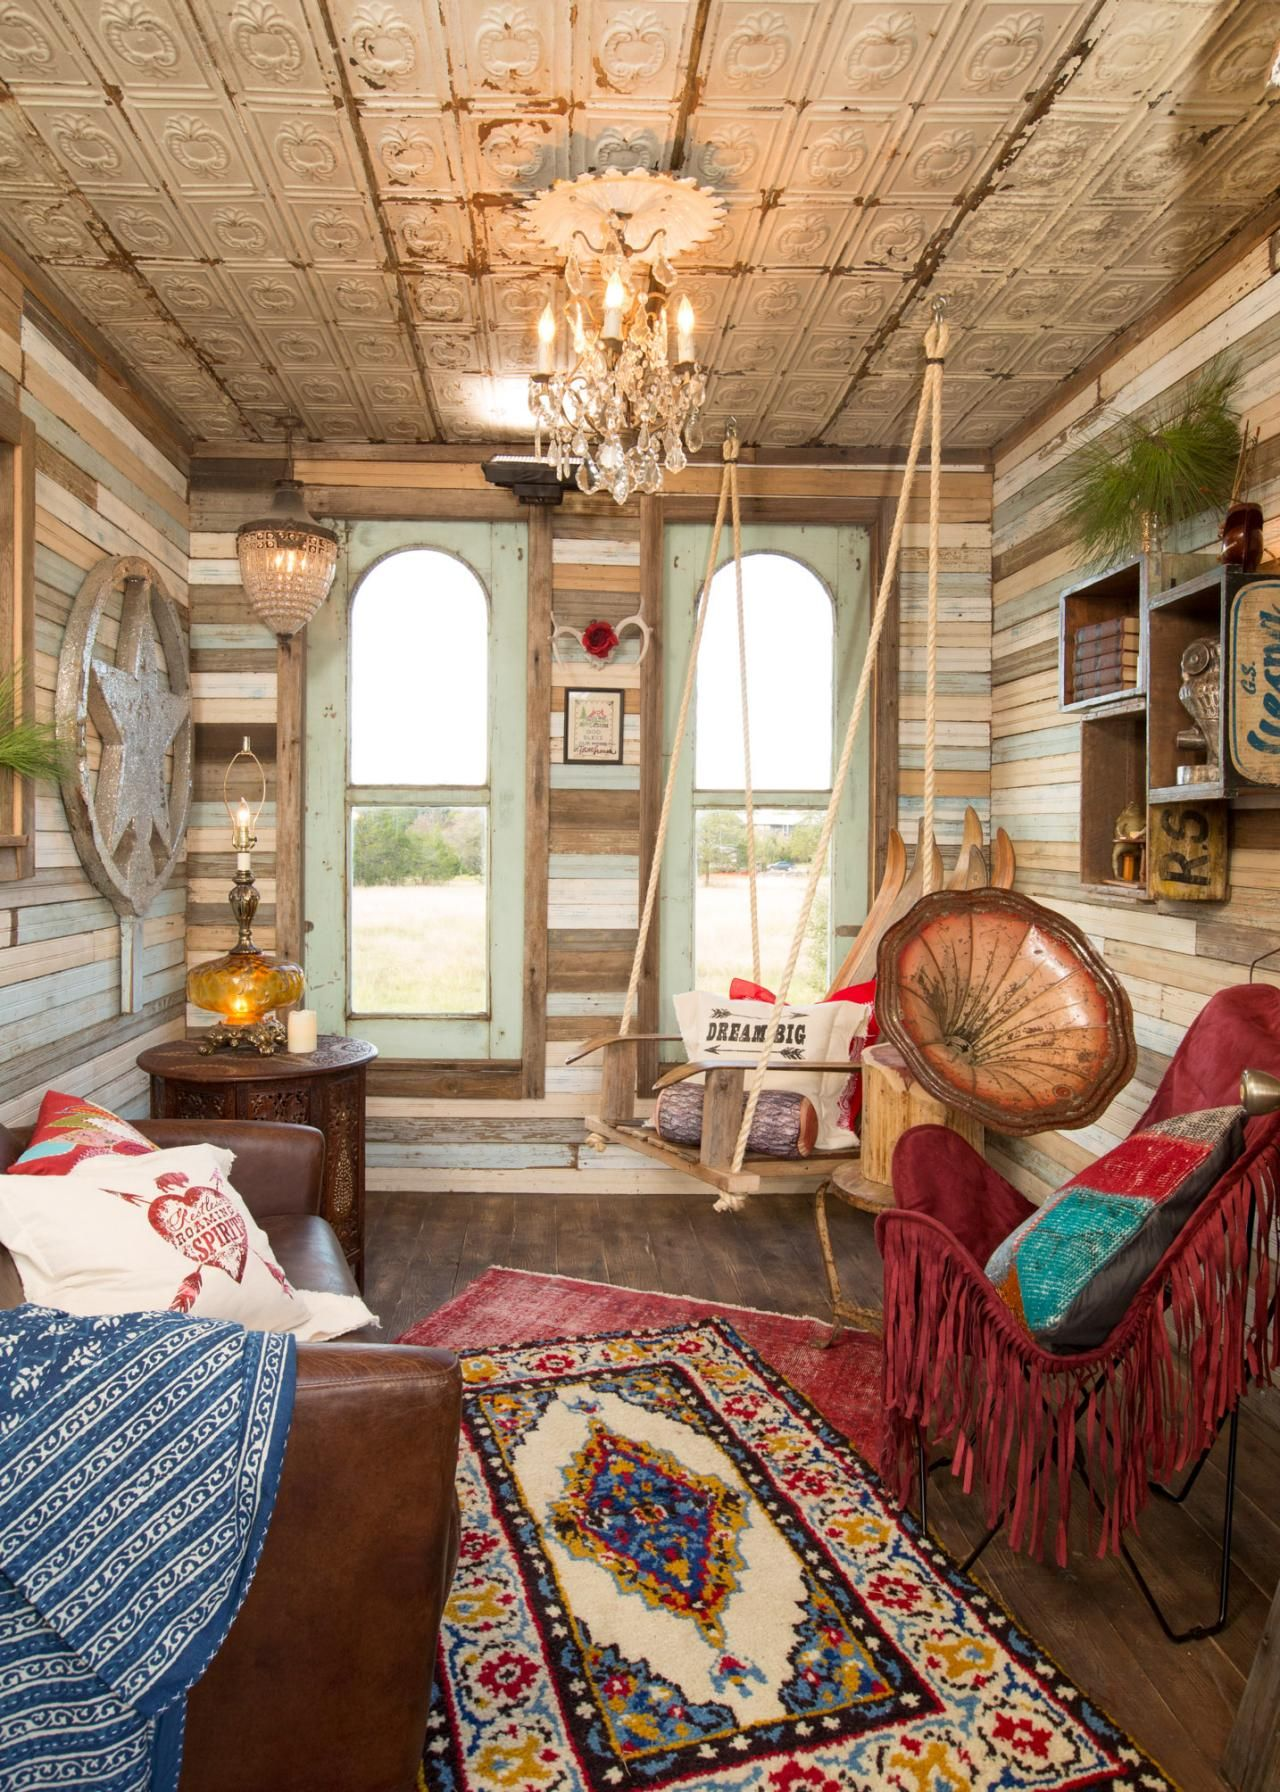 Amie and jolie brought junk gypsy funkiness to the quaint for Gypsy bedroom decor